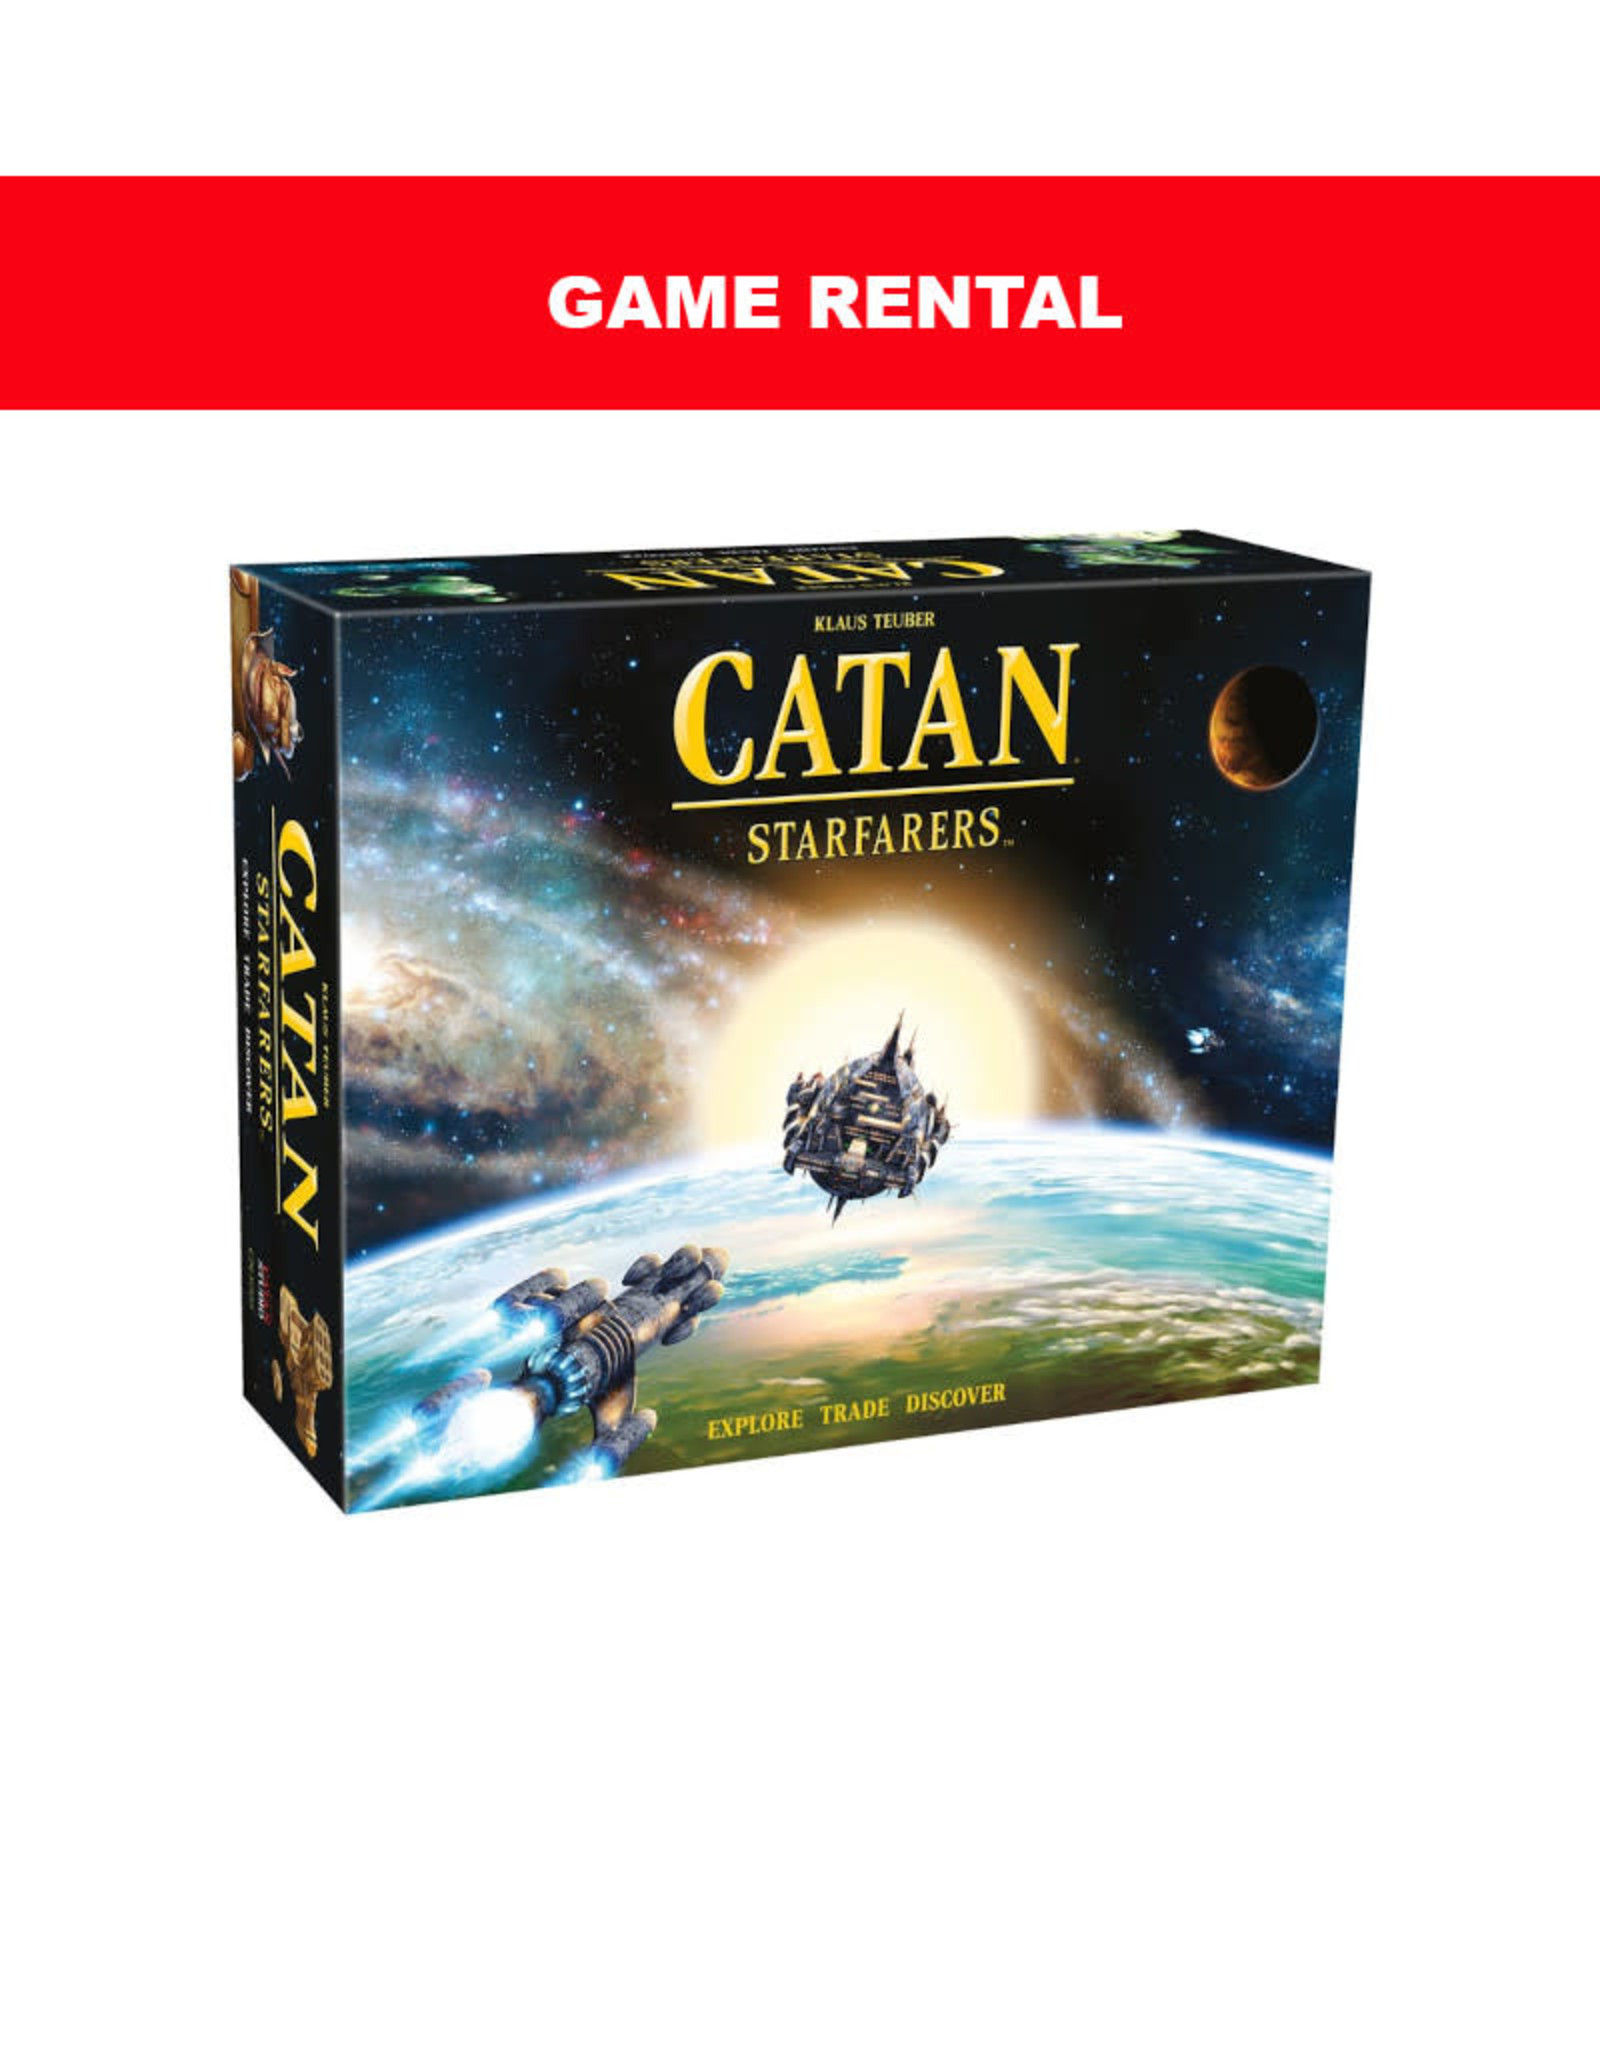 (RENT) Catan Starfarers for a Day. Love It! Buy It!